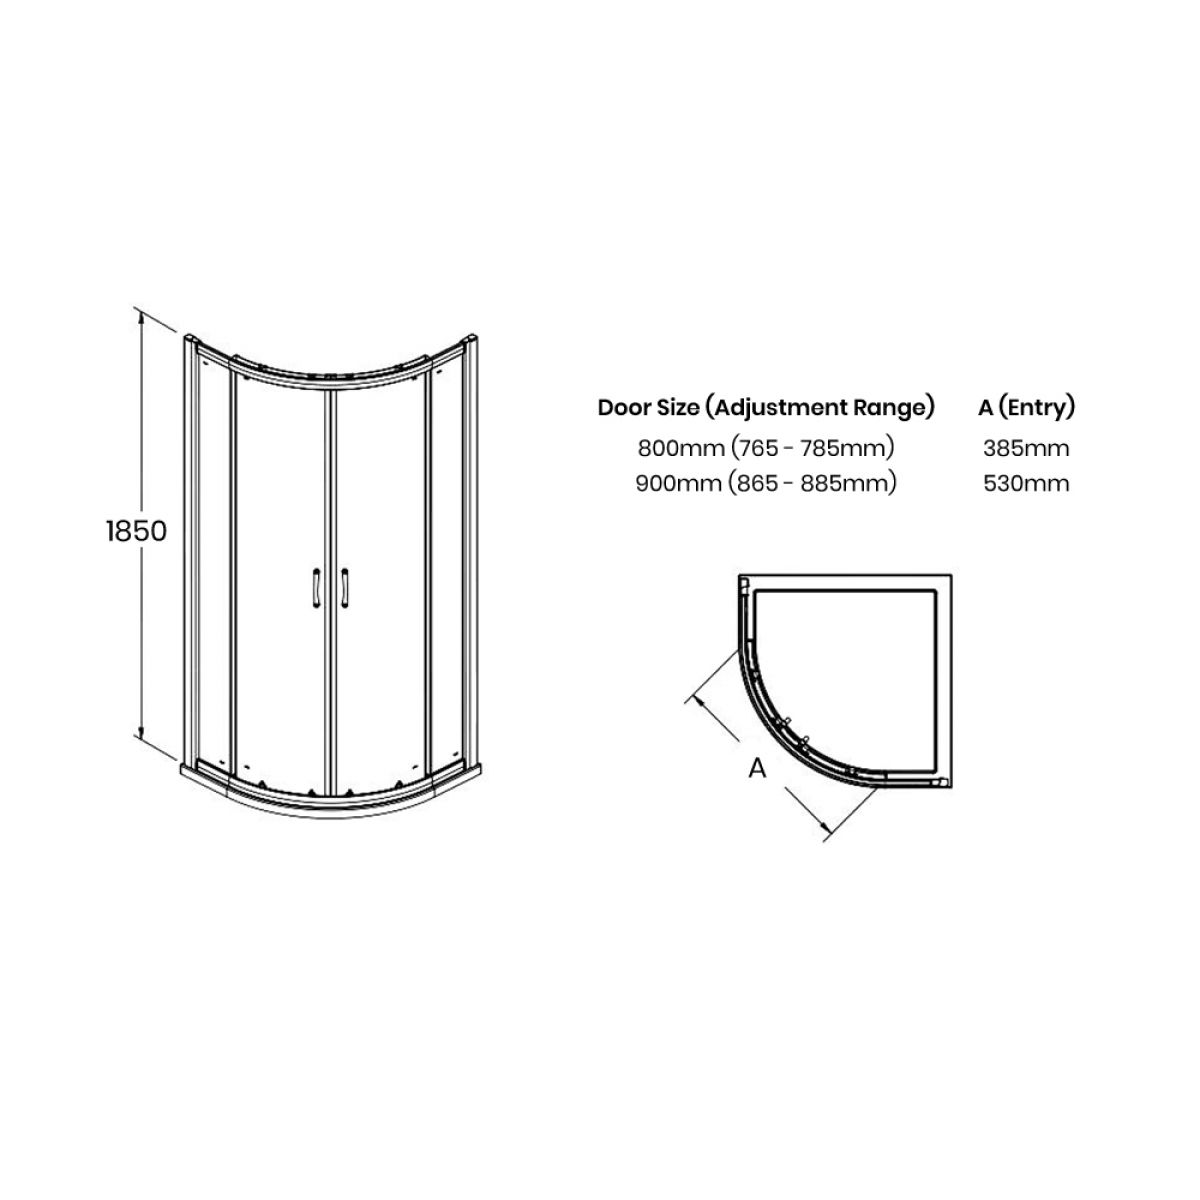 Premier Ella Quadrant Shower Enclosure Dimensions